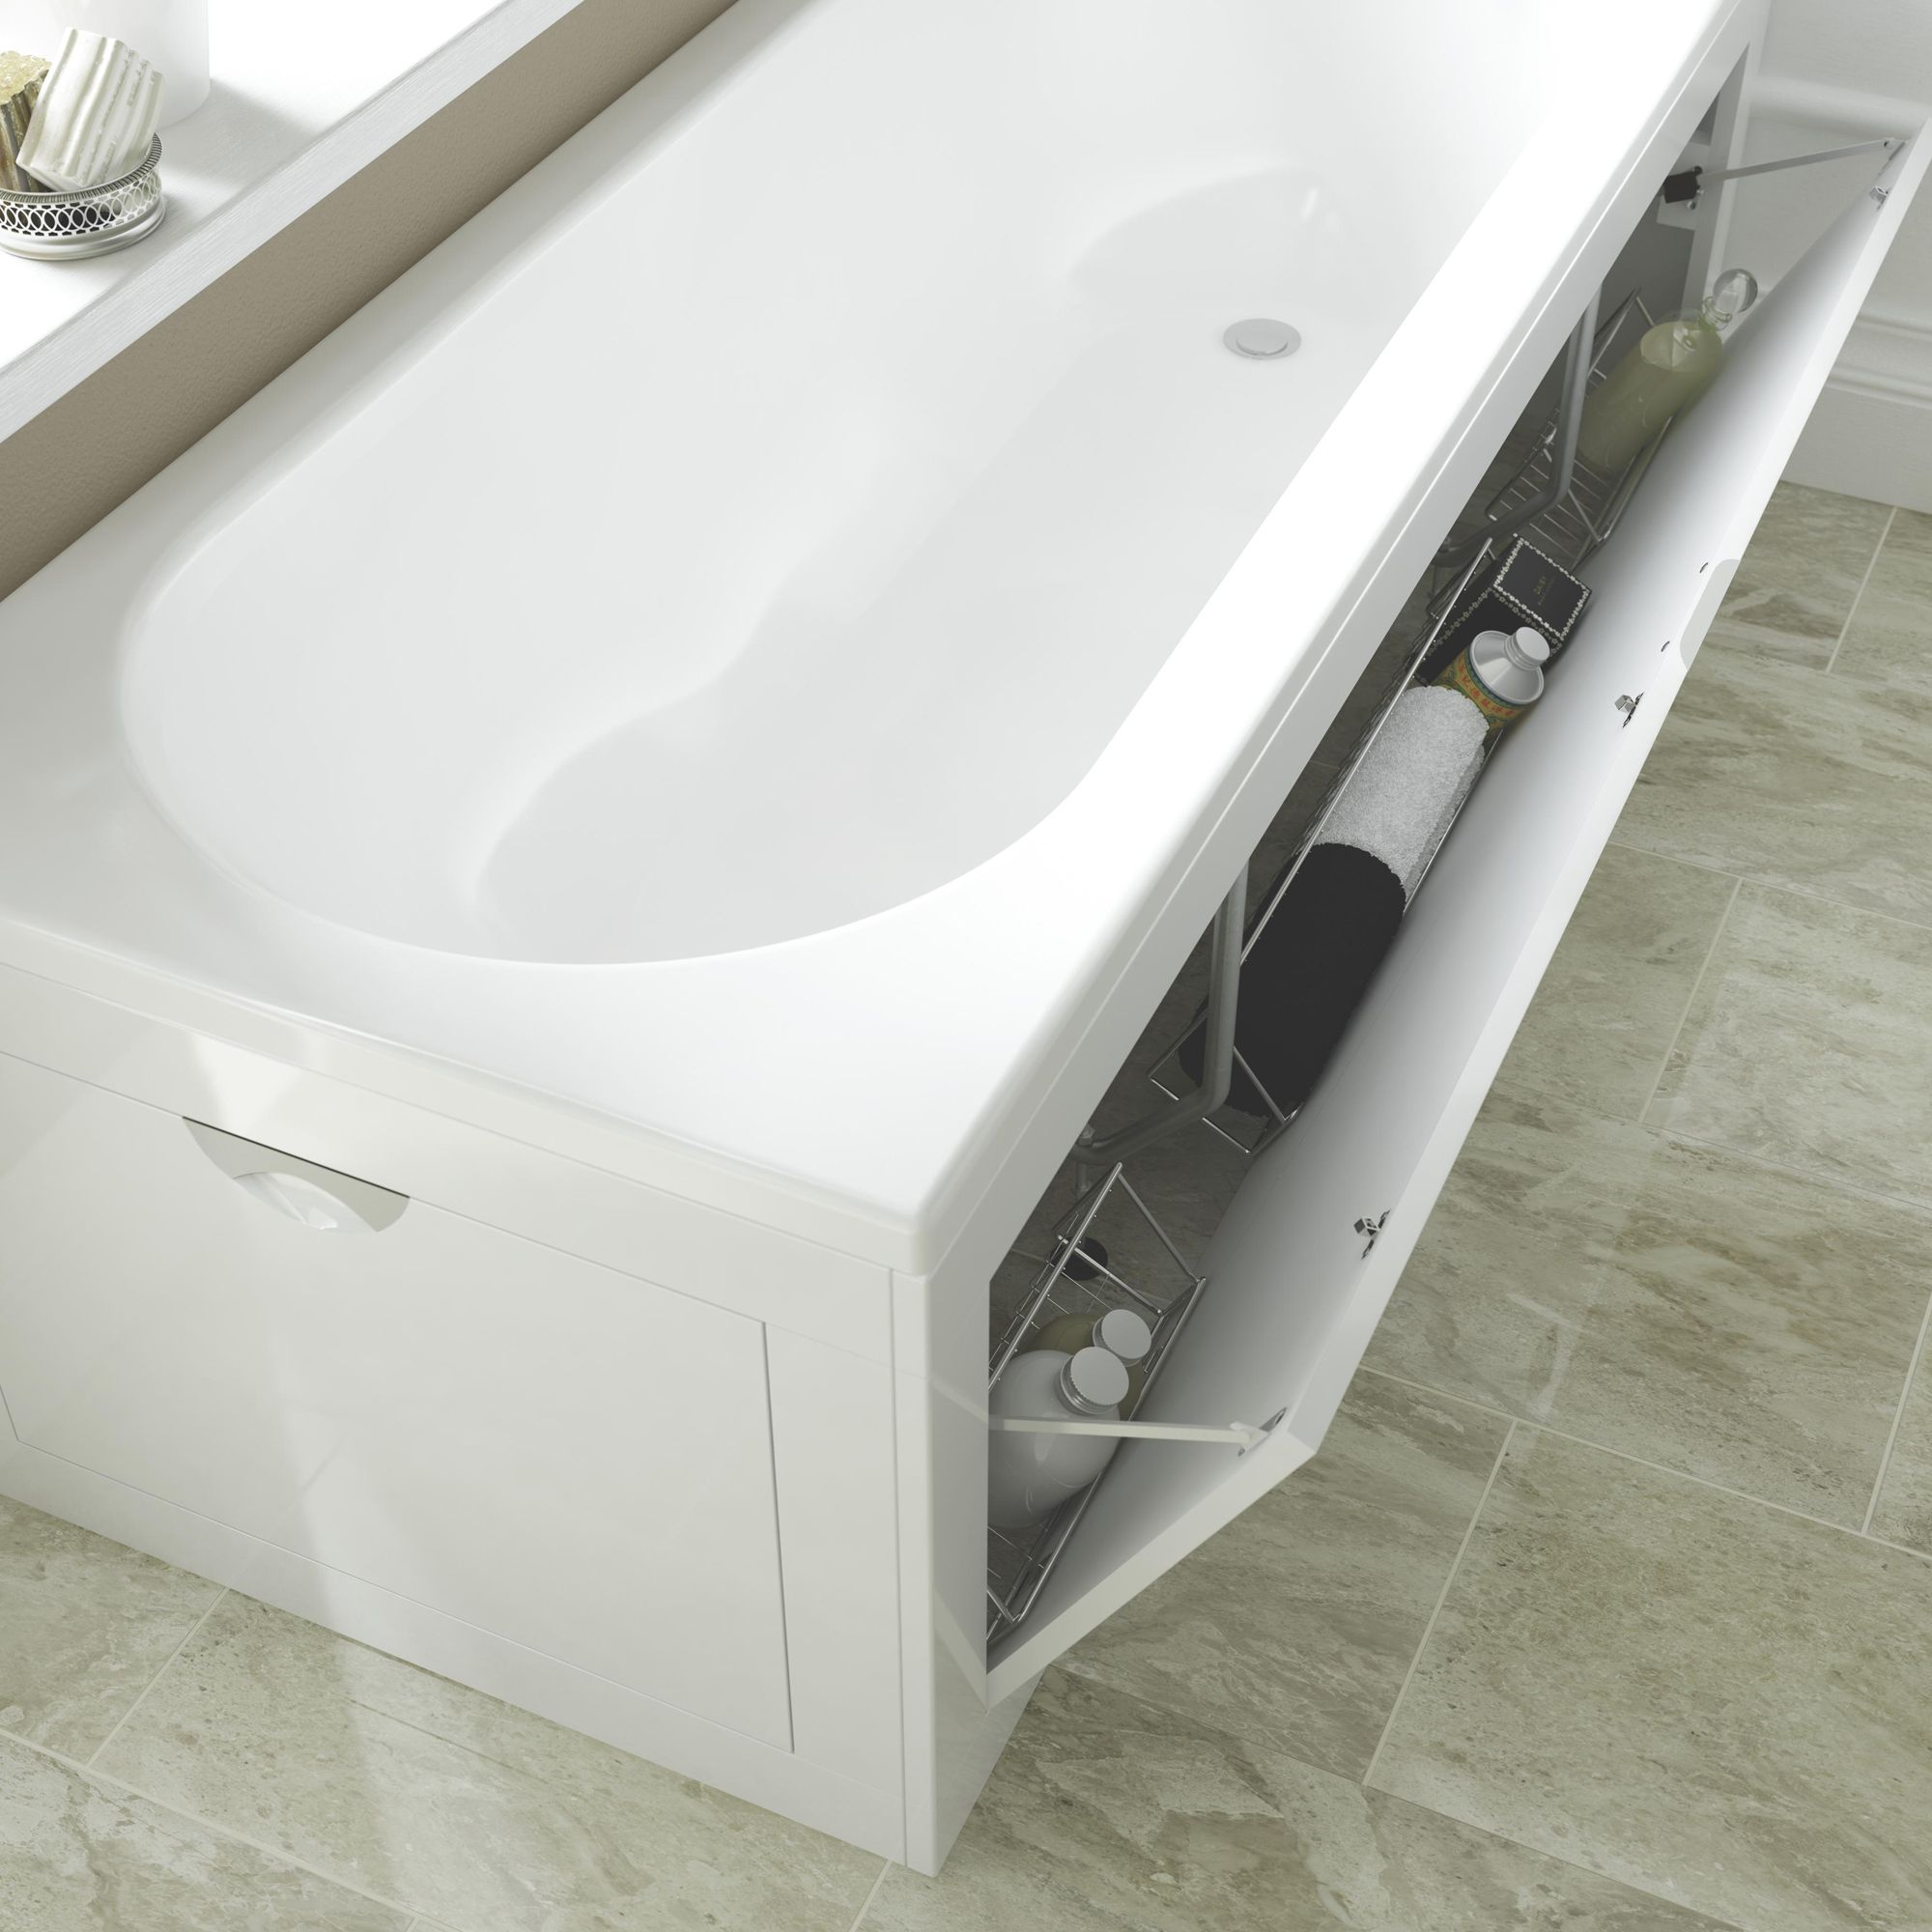 Cooke lewis gloss white bath front panel departments B q bathroom design service